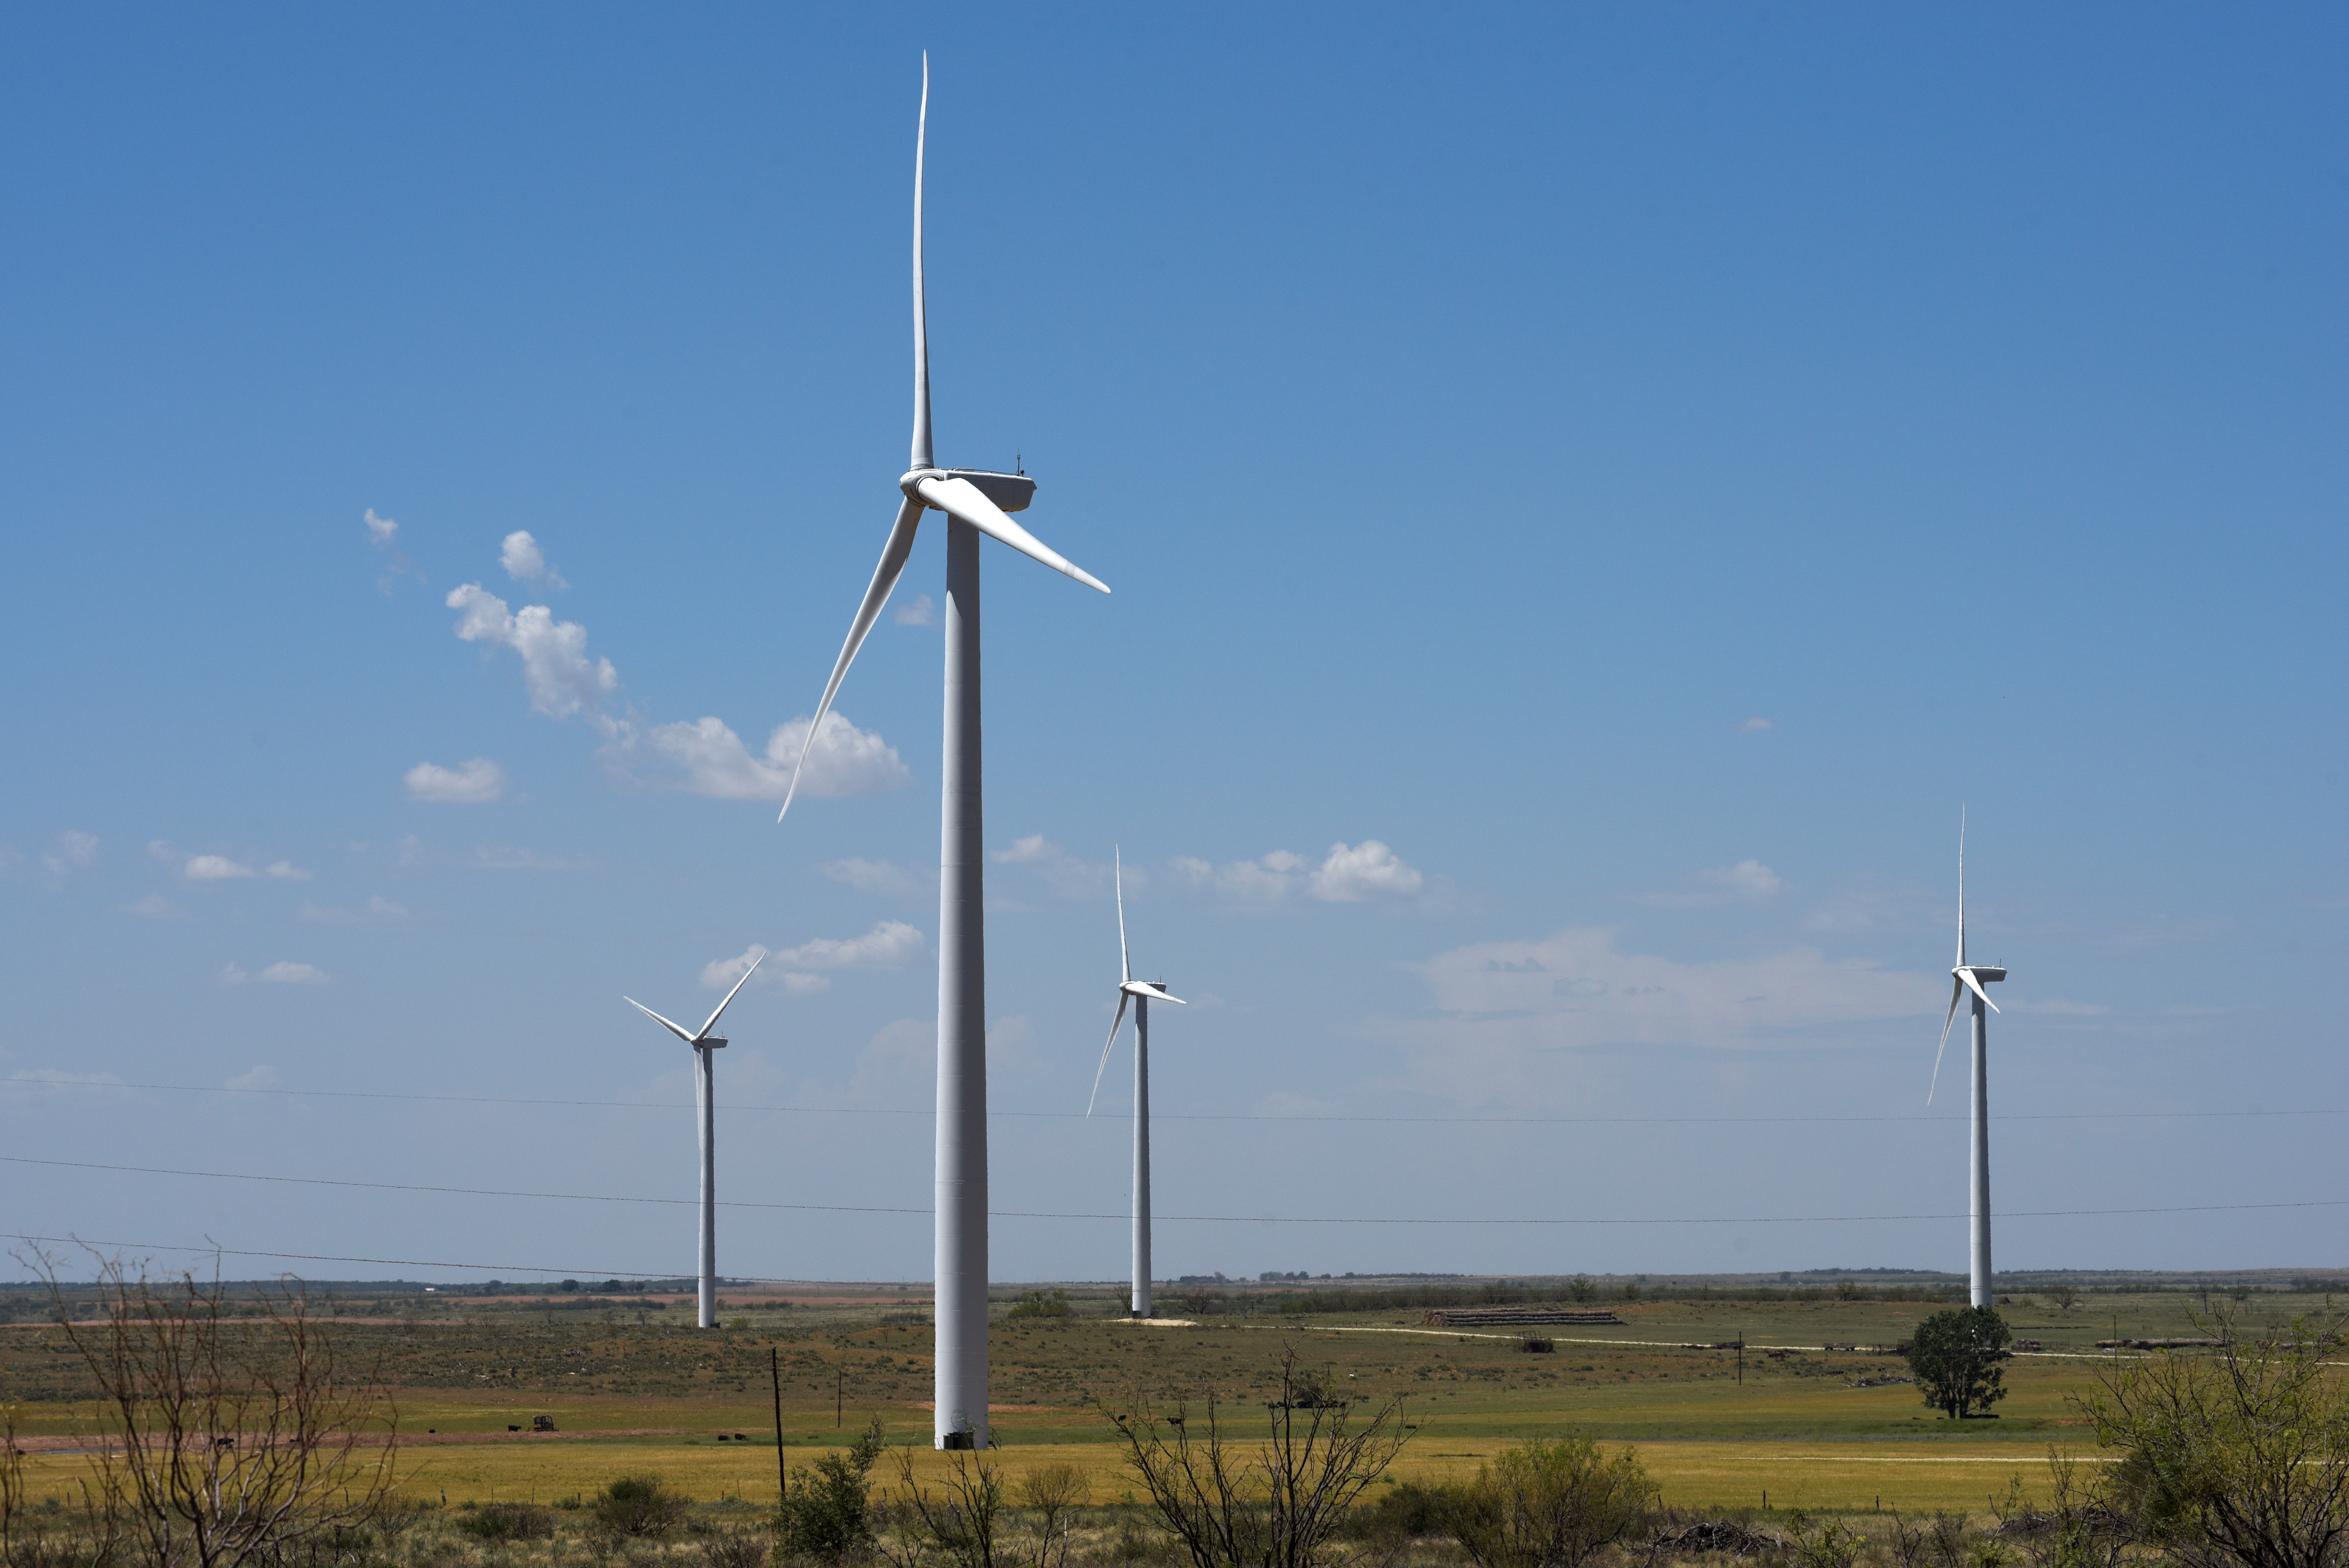 Wind turbines generate power at the Loraine Windpark Project in Loraine